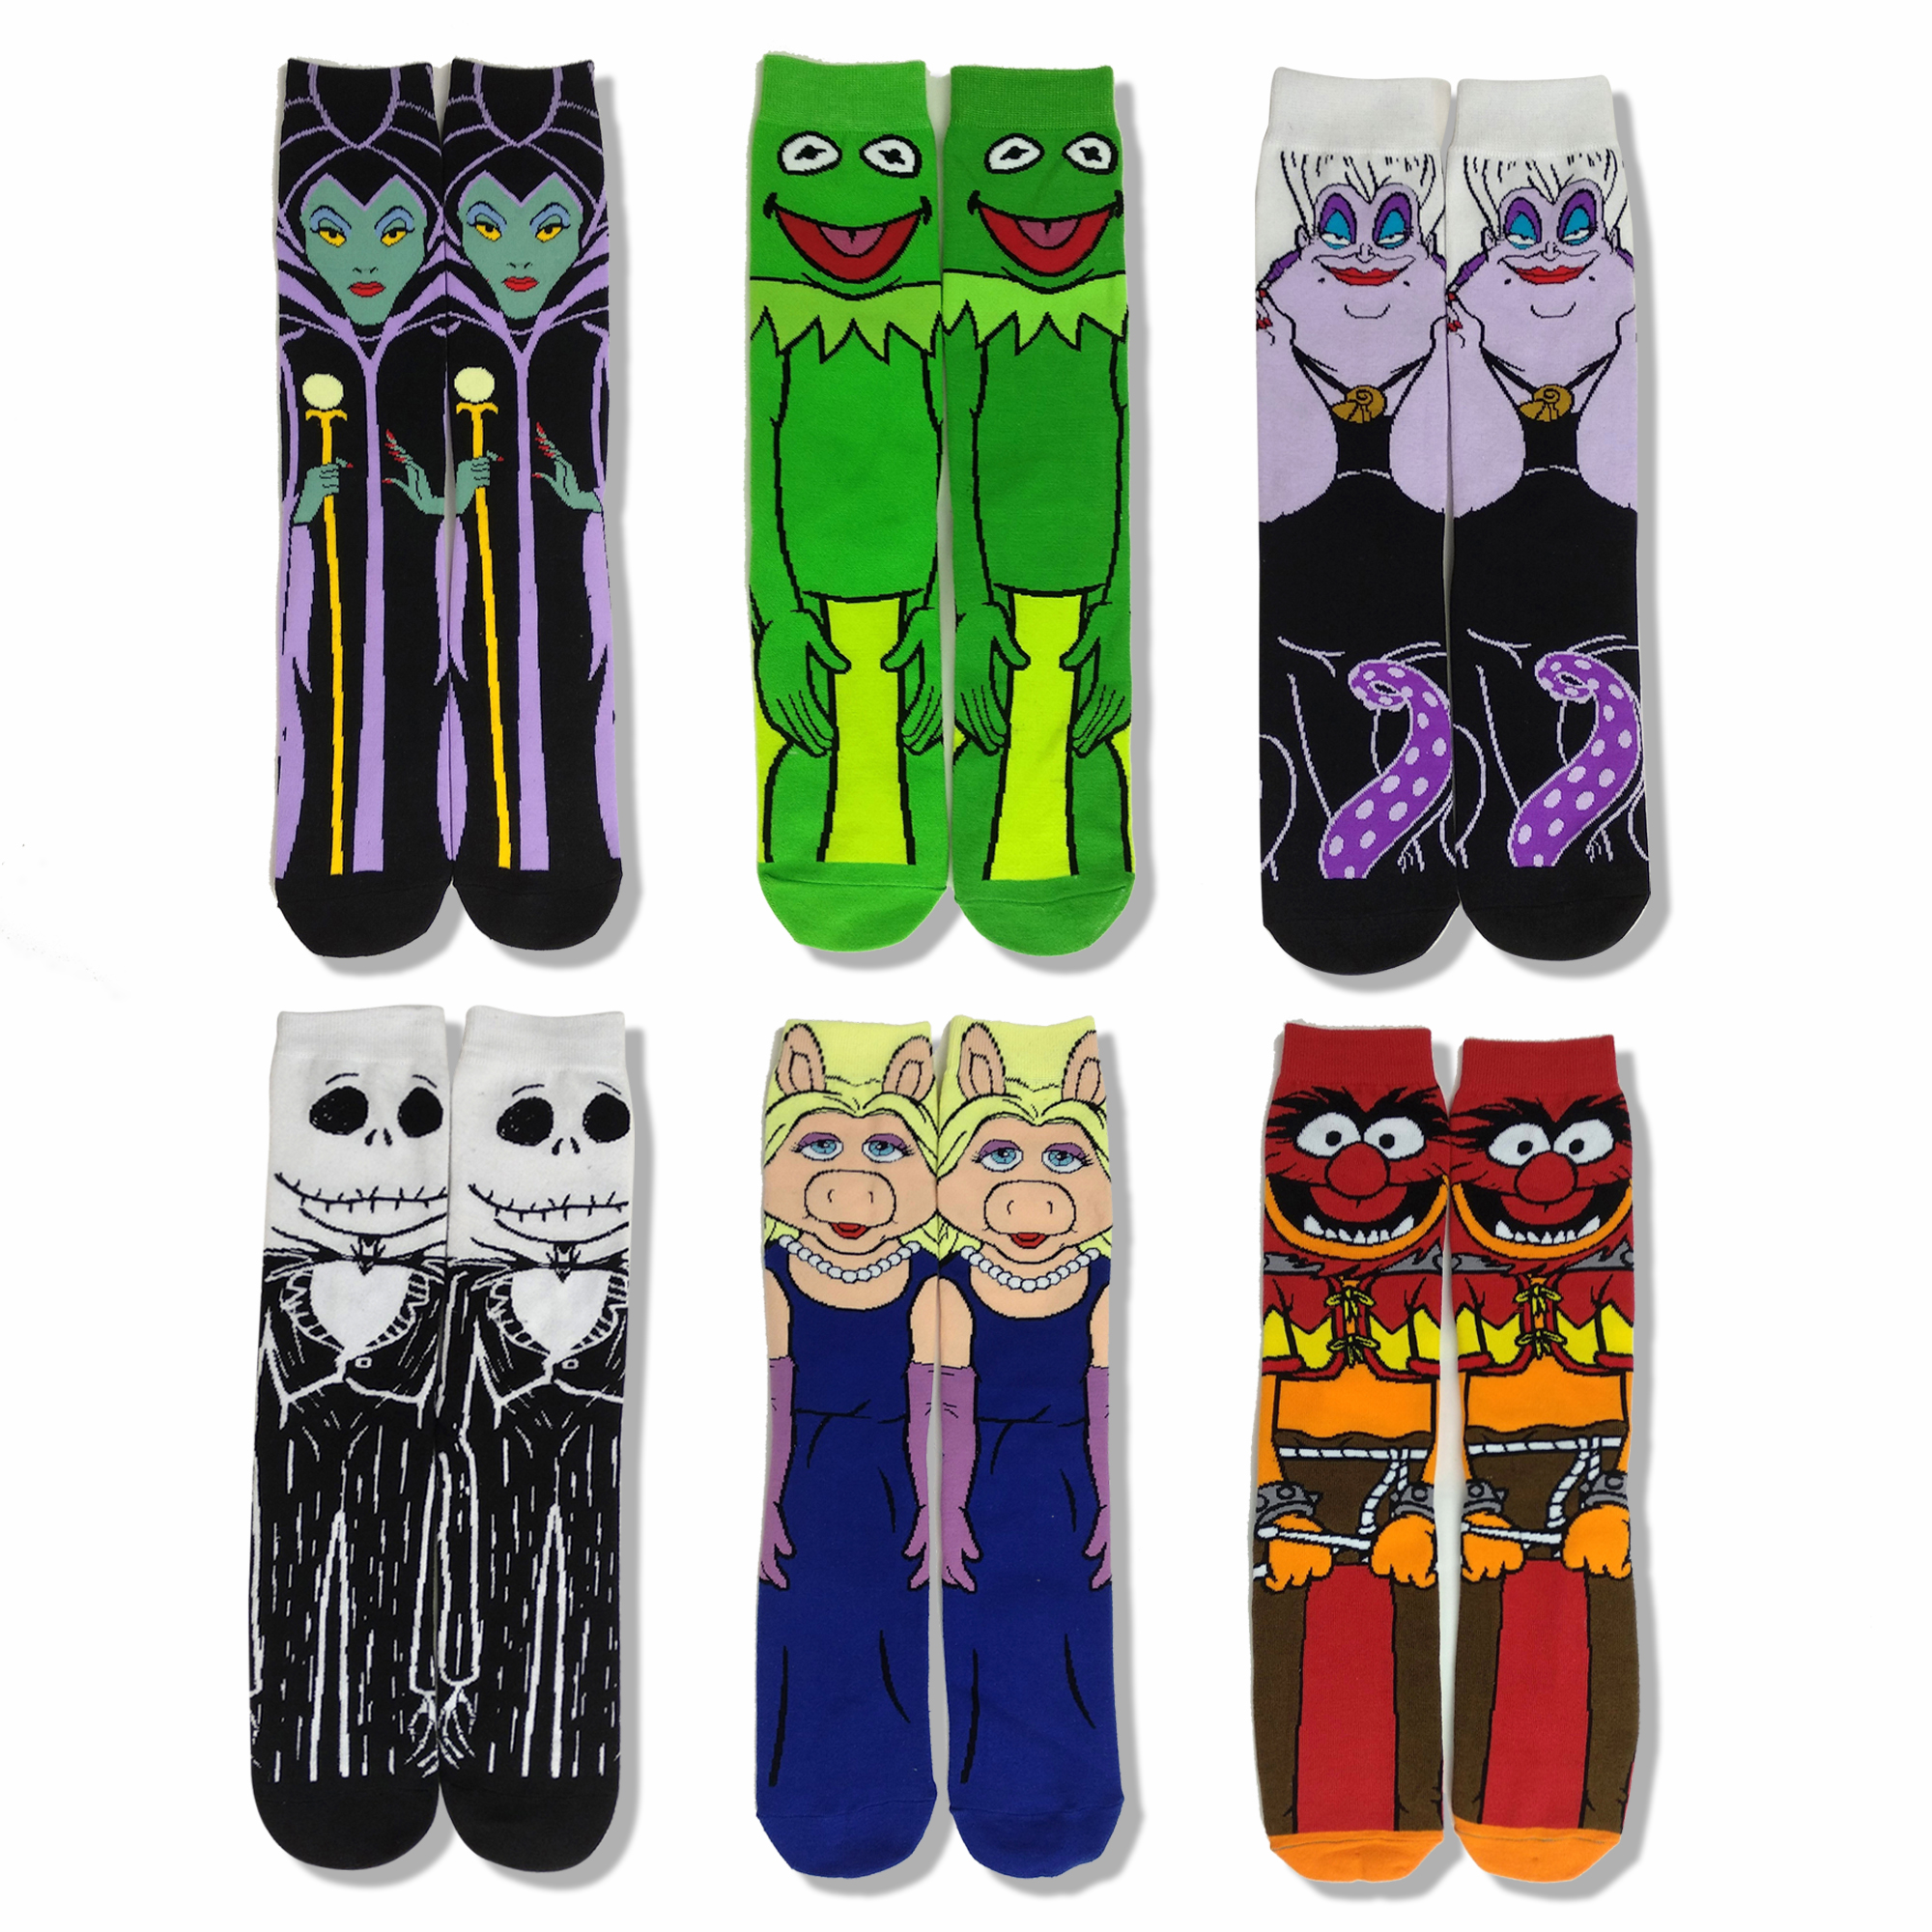 Cotton Anime Mens Socks Dress Casual Hip Hop Stance Socks Unisex Harajuku Creative Winter Warm Cartoon Character Socks